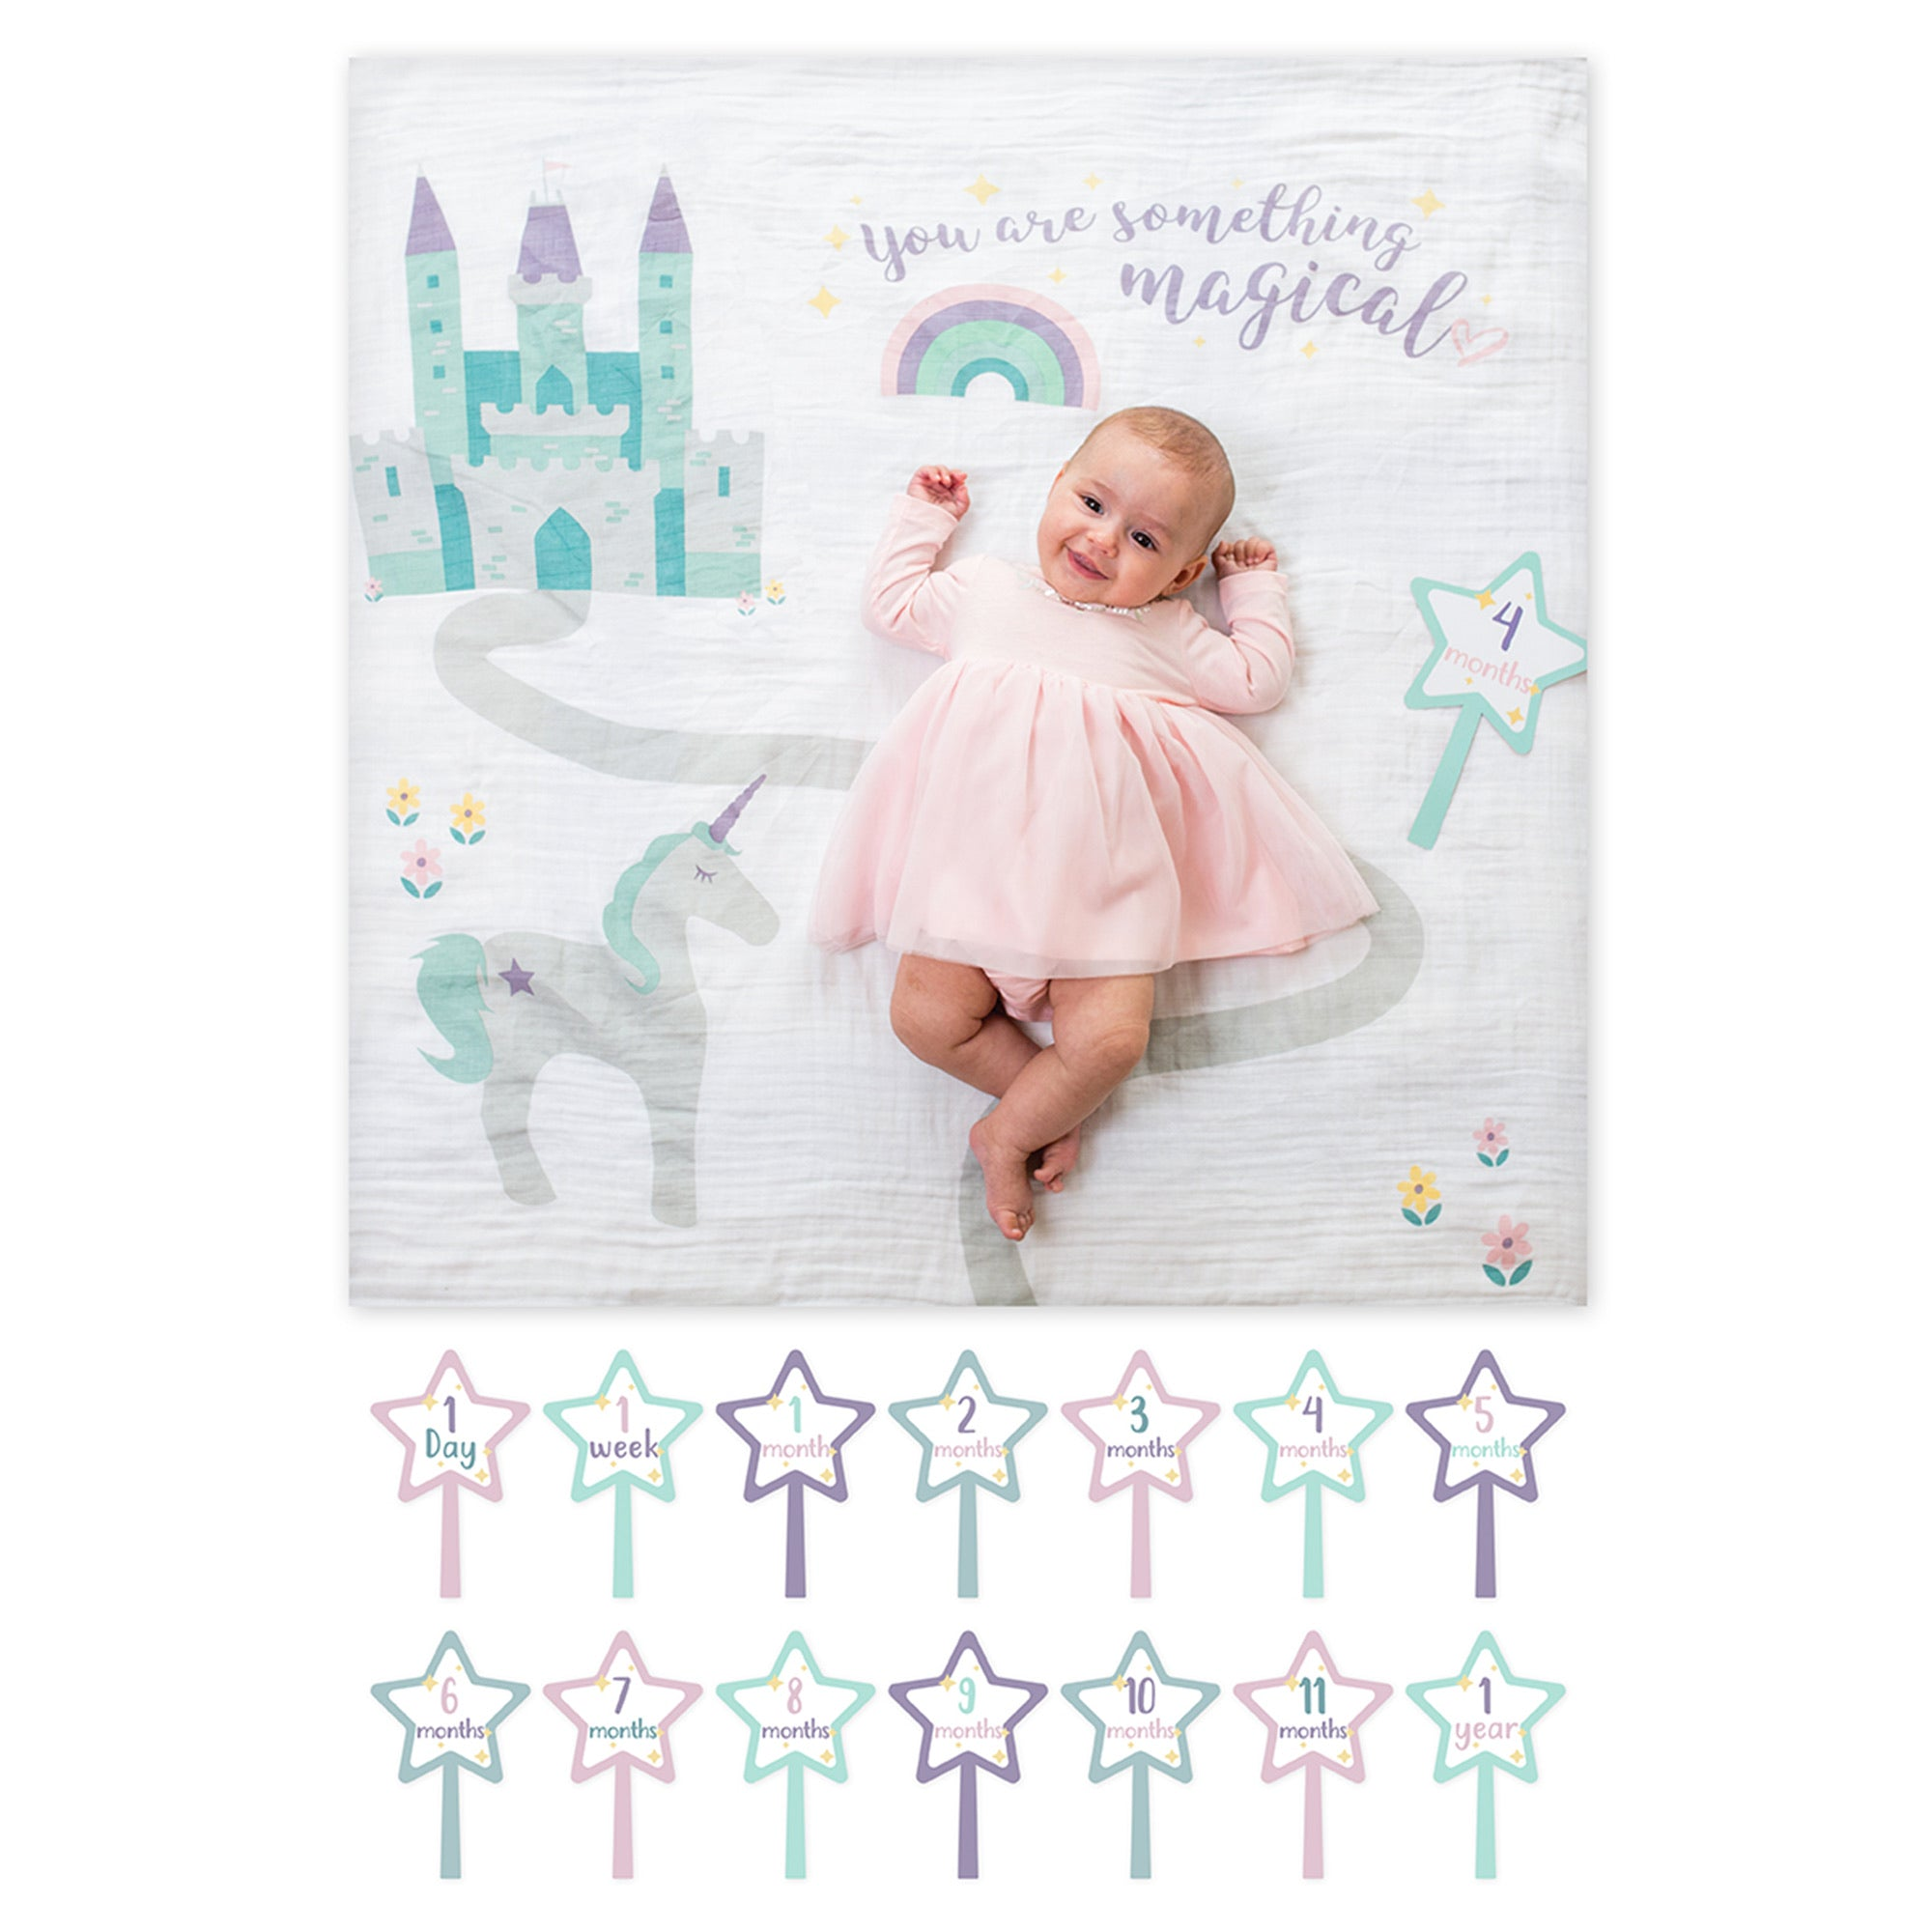 Milestone Muslin Blanket & Card Set - Something Magical